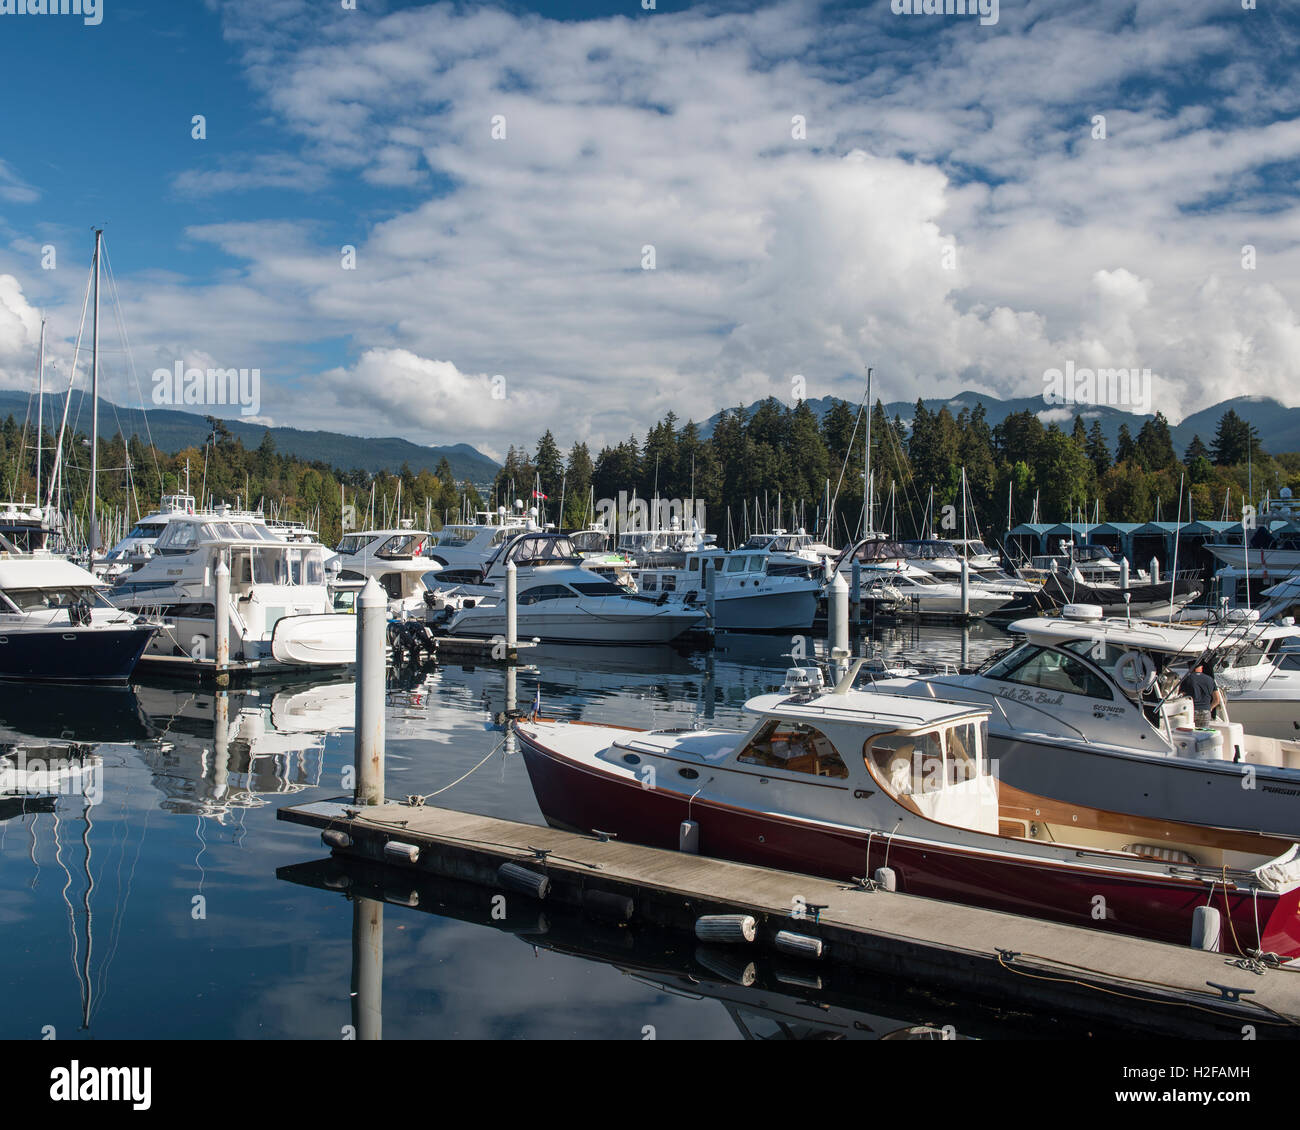 North view of moored boats in Coal Harbour Marina, Vancouver British Columbia. - Stock Image